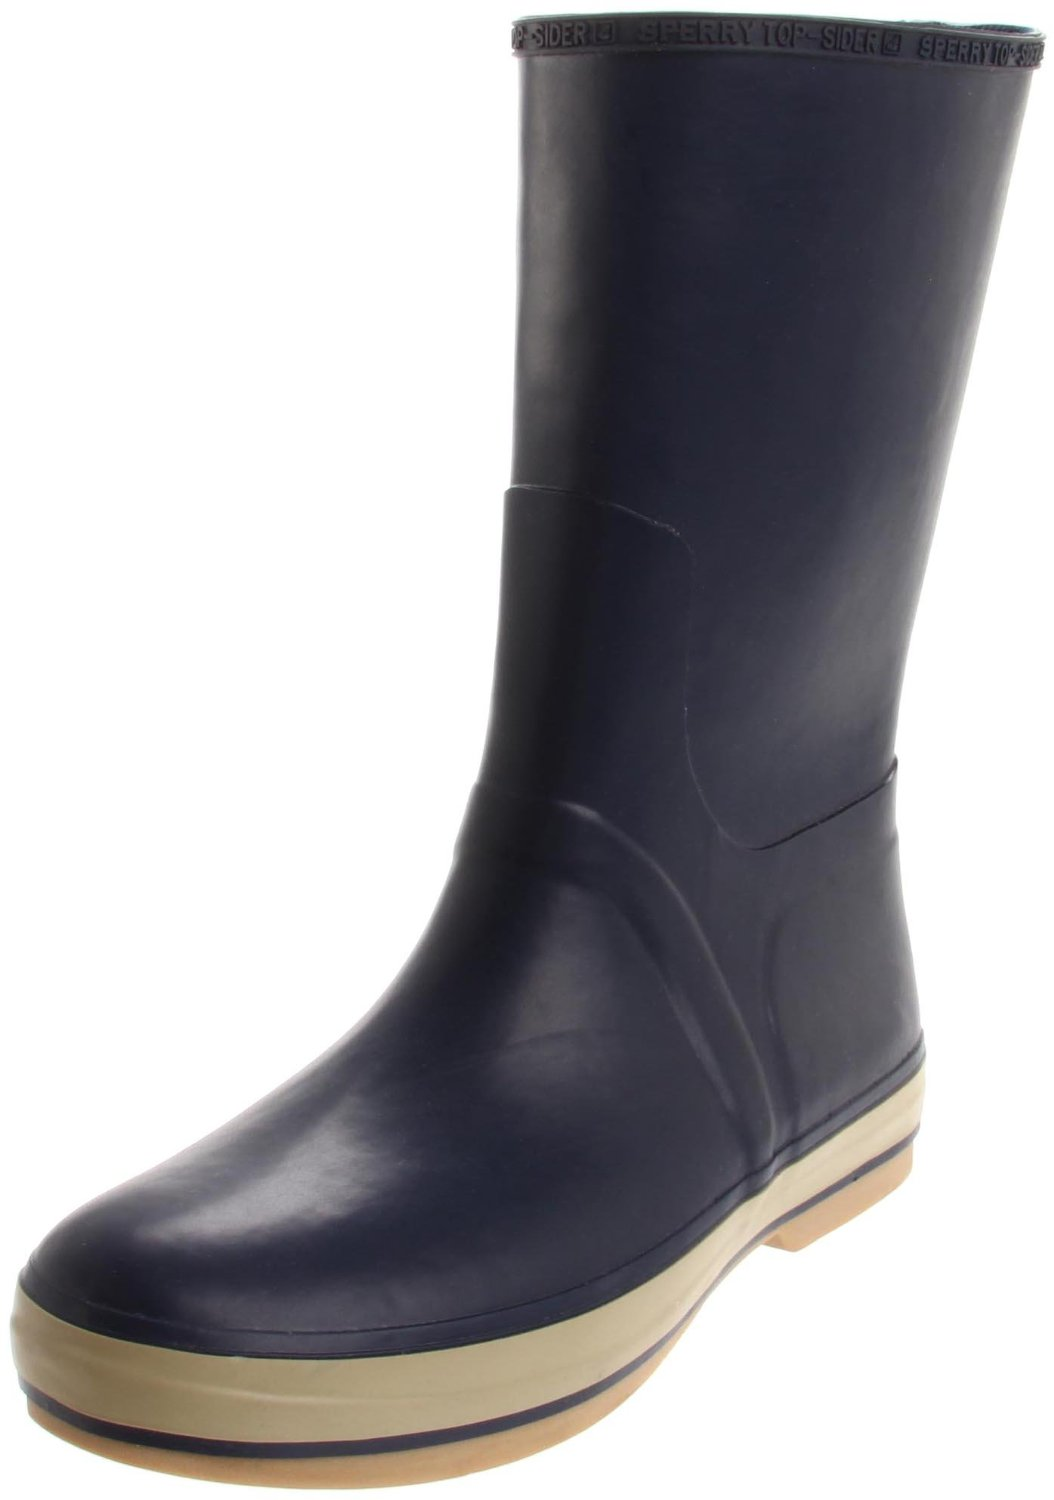 Sperry Top-sider Mens Rubber Rain Boot in Blue for Men